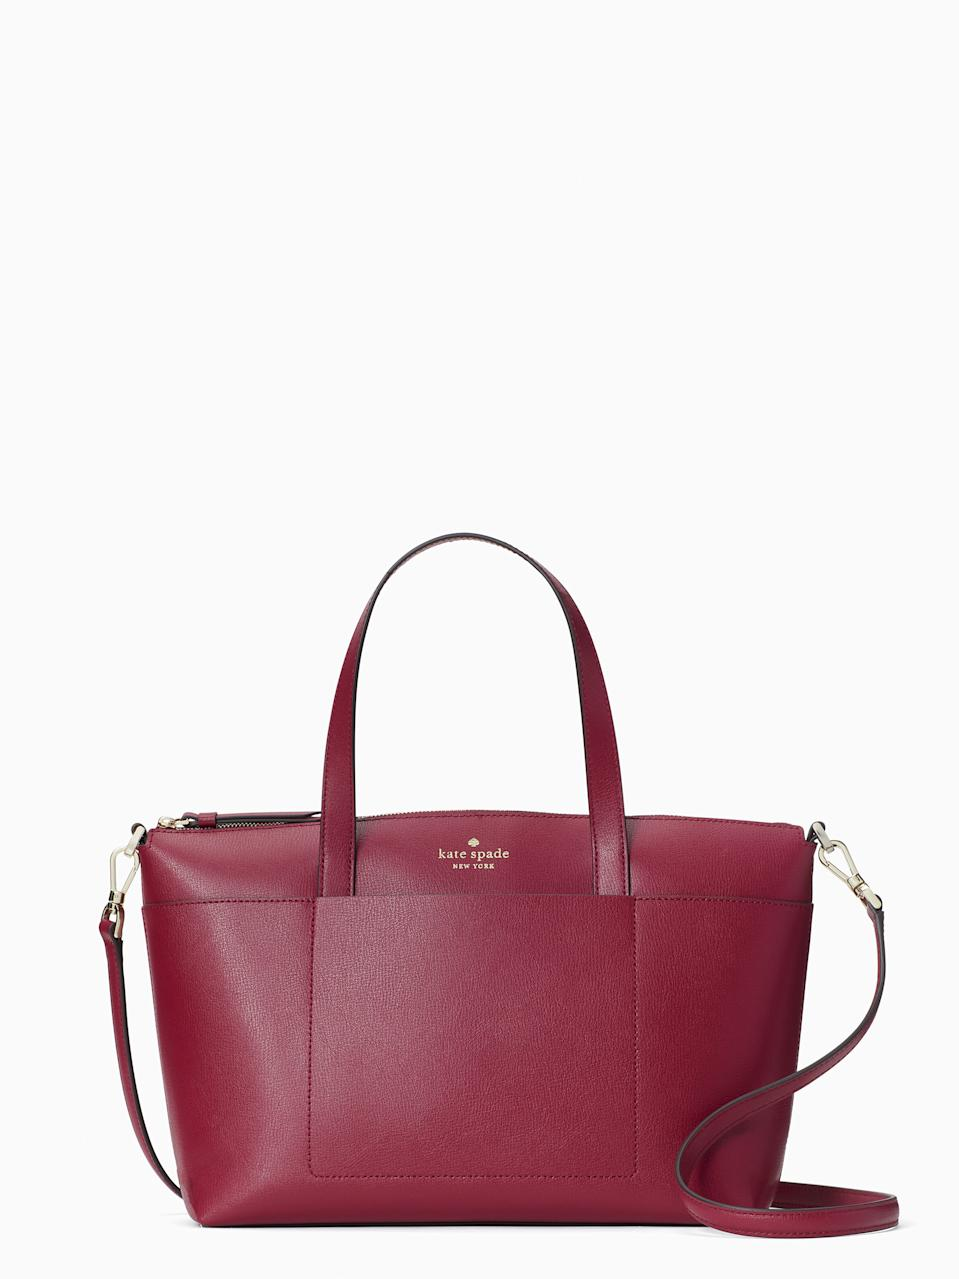 Patrice Satchel - Kate Spade, $119 (originally $359)